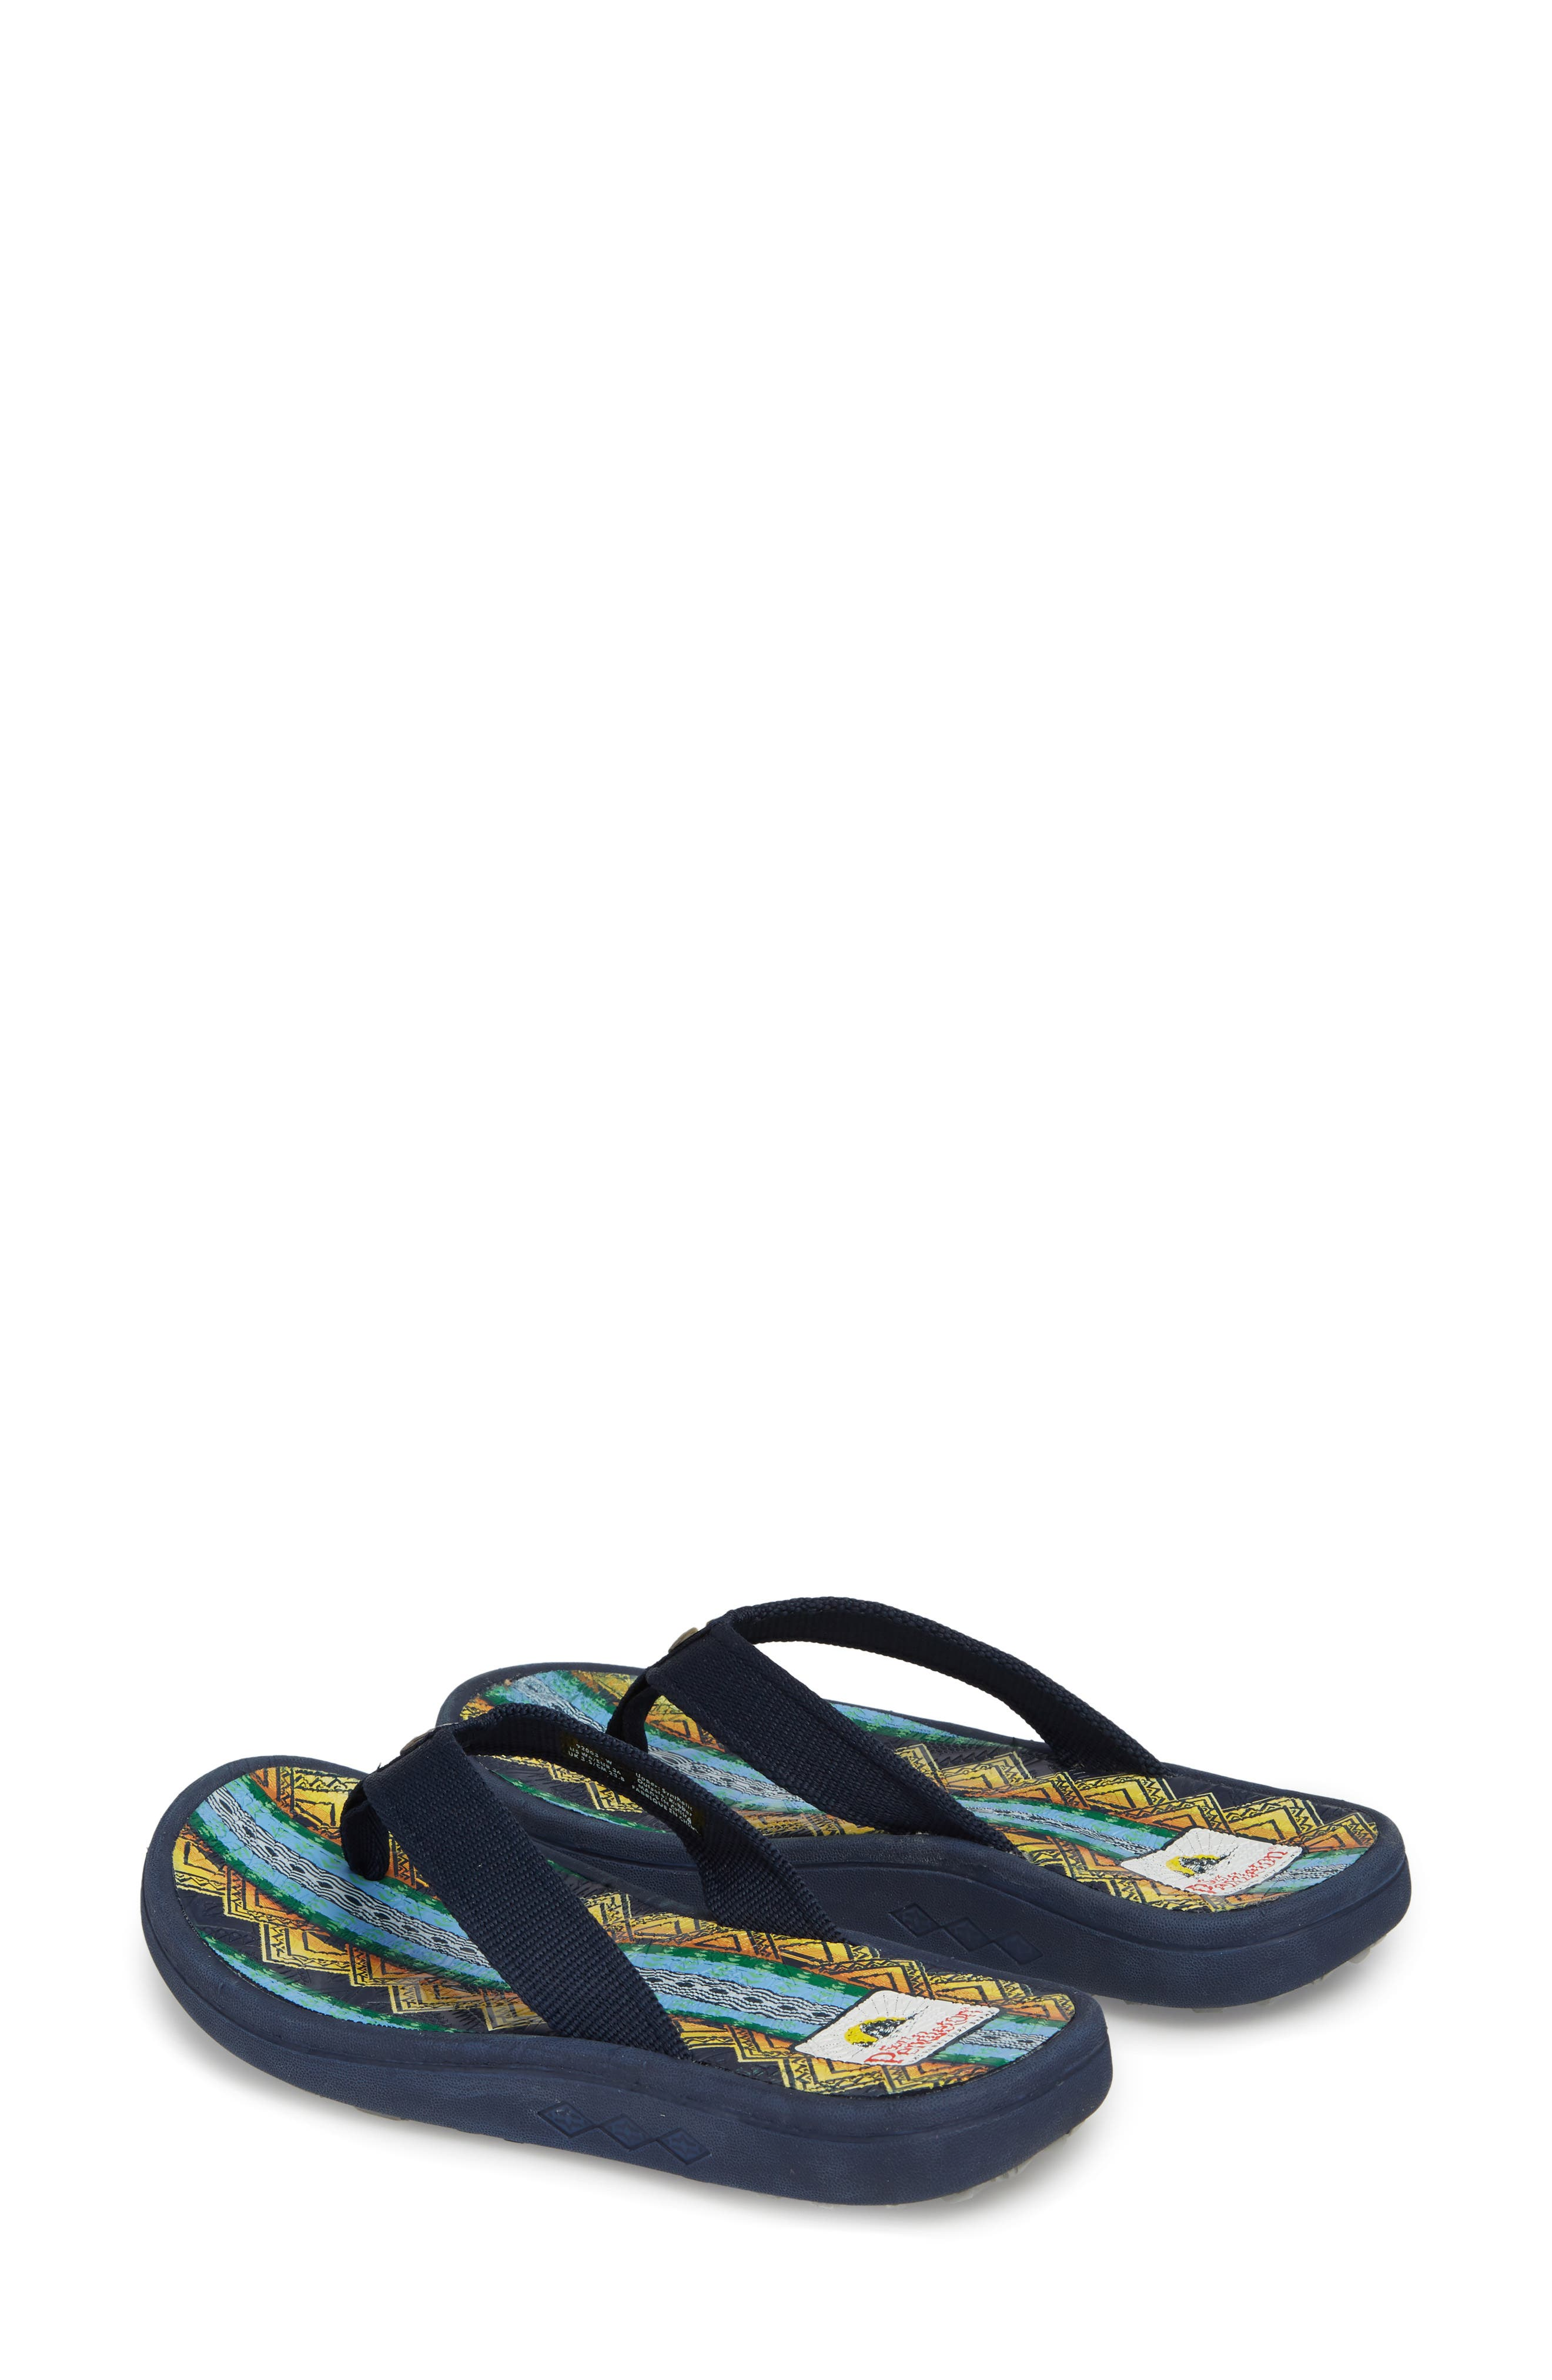 Pendleton American Treasures Flip Flop,                             Alternate thumbnail 3, color,                             NAVY